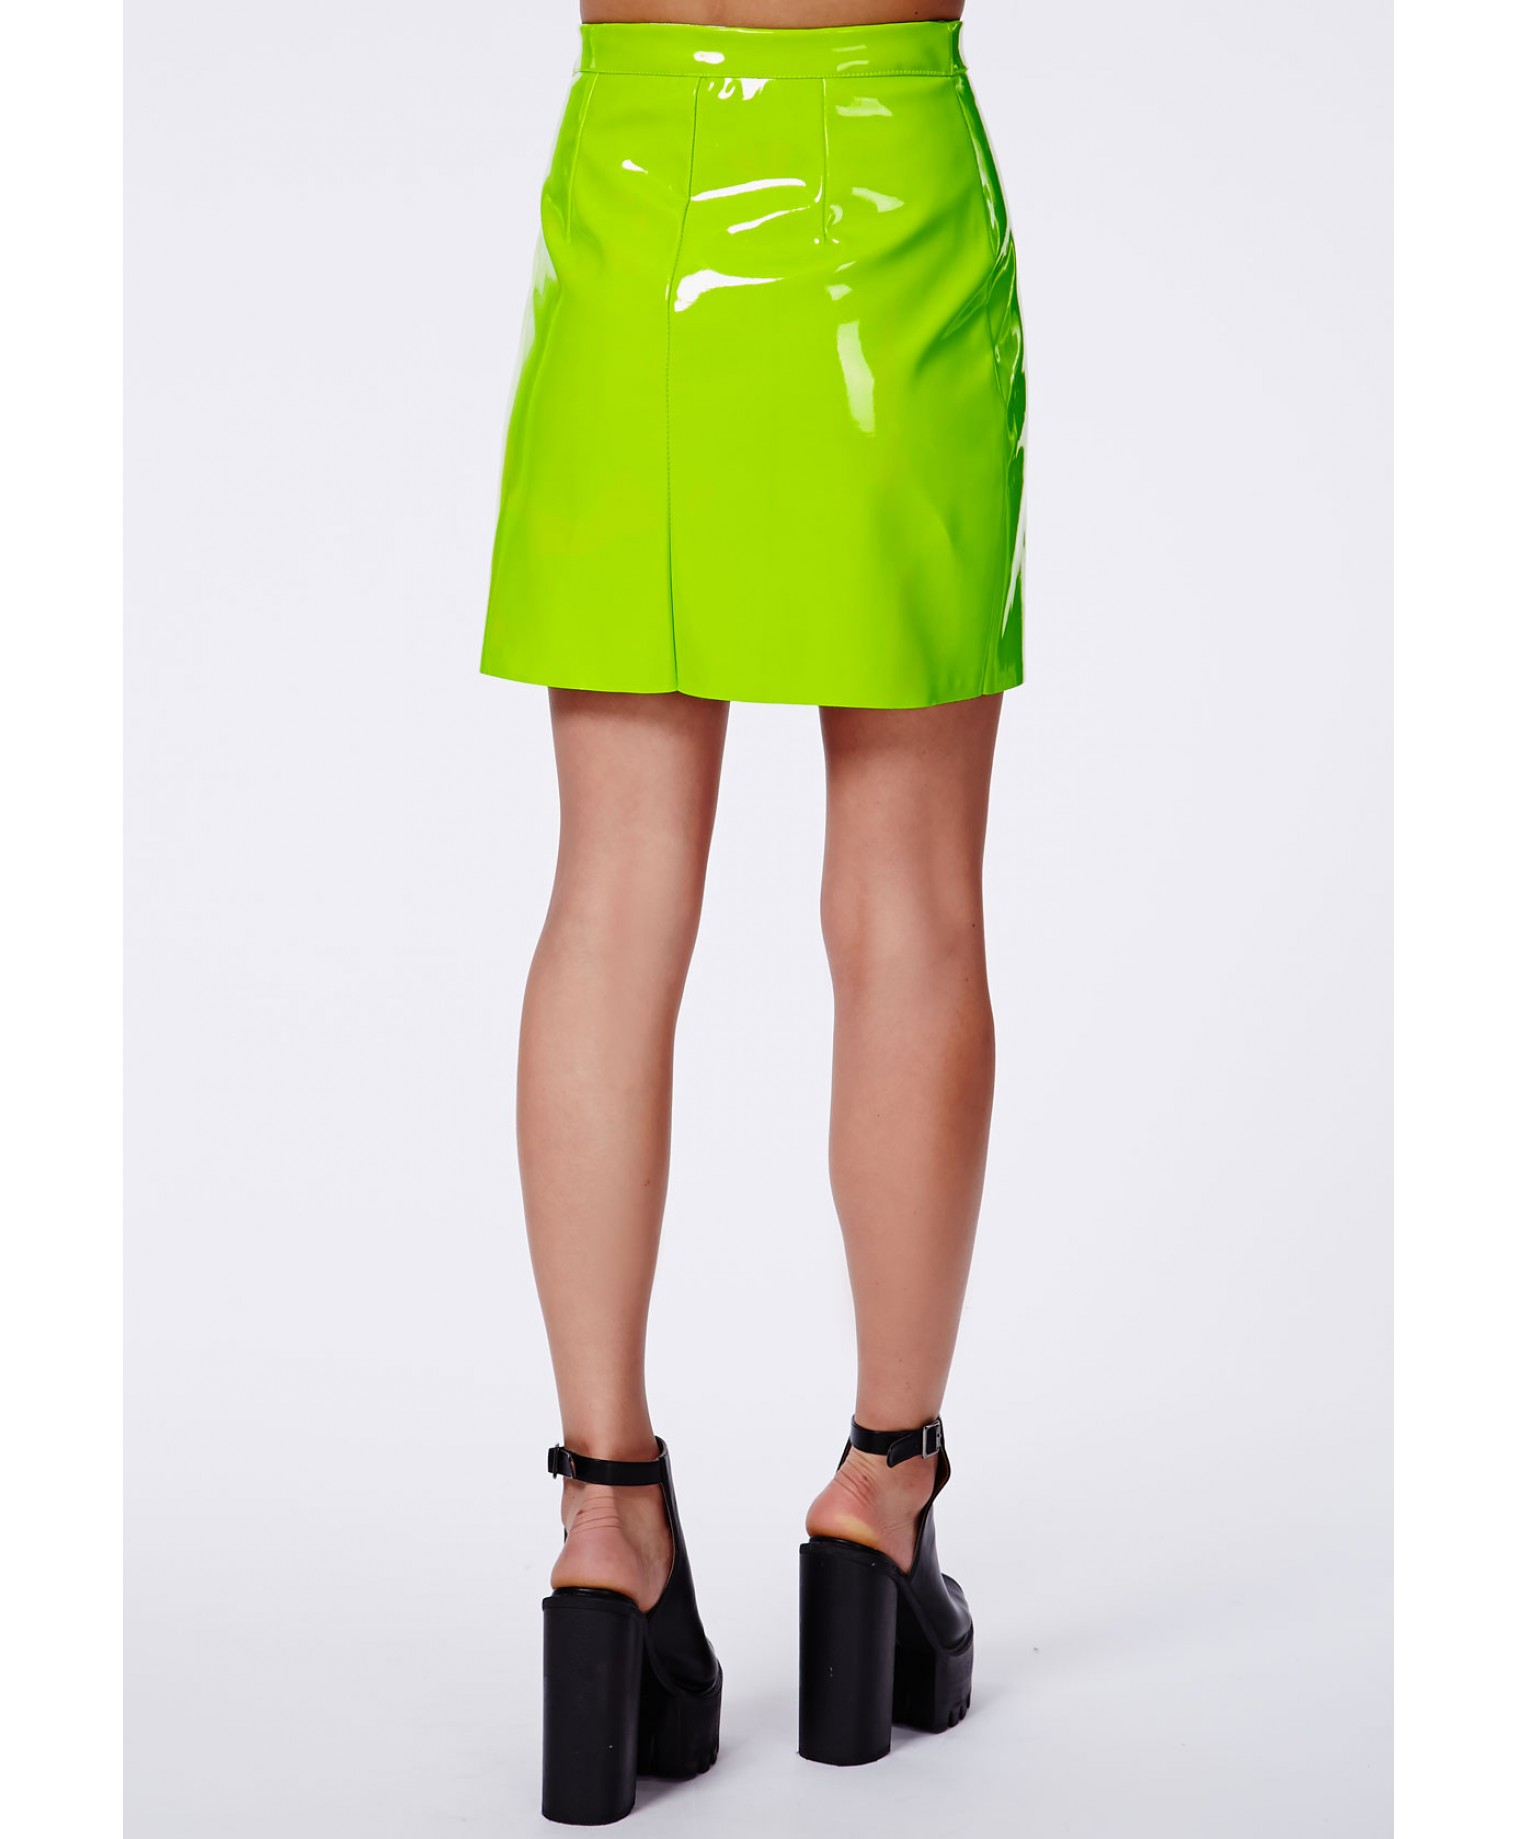 Showcase a little edge this season in this neon green PVC mini skirt. On trend and set to make a statement to any girl's wardrobe. Team with a crop top, biker jacket and sky high salestopp1se.gq: $5.